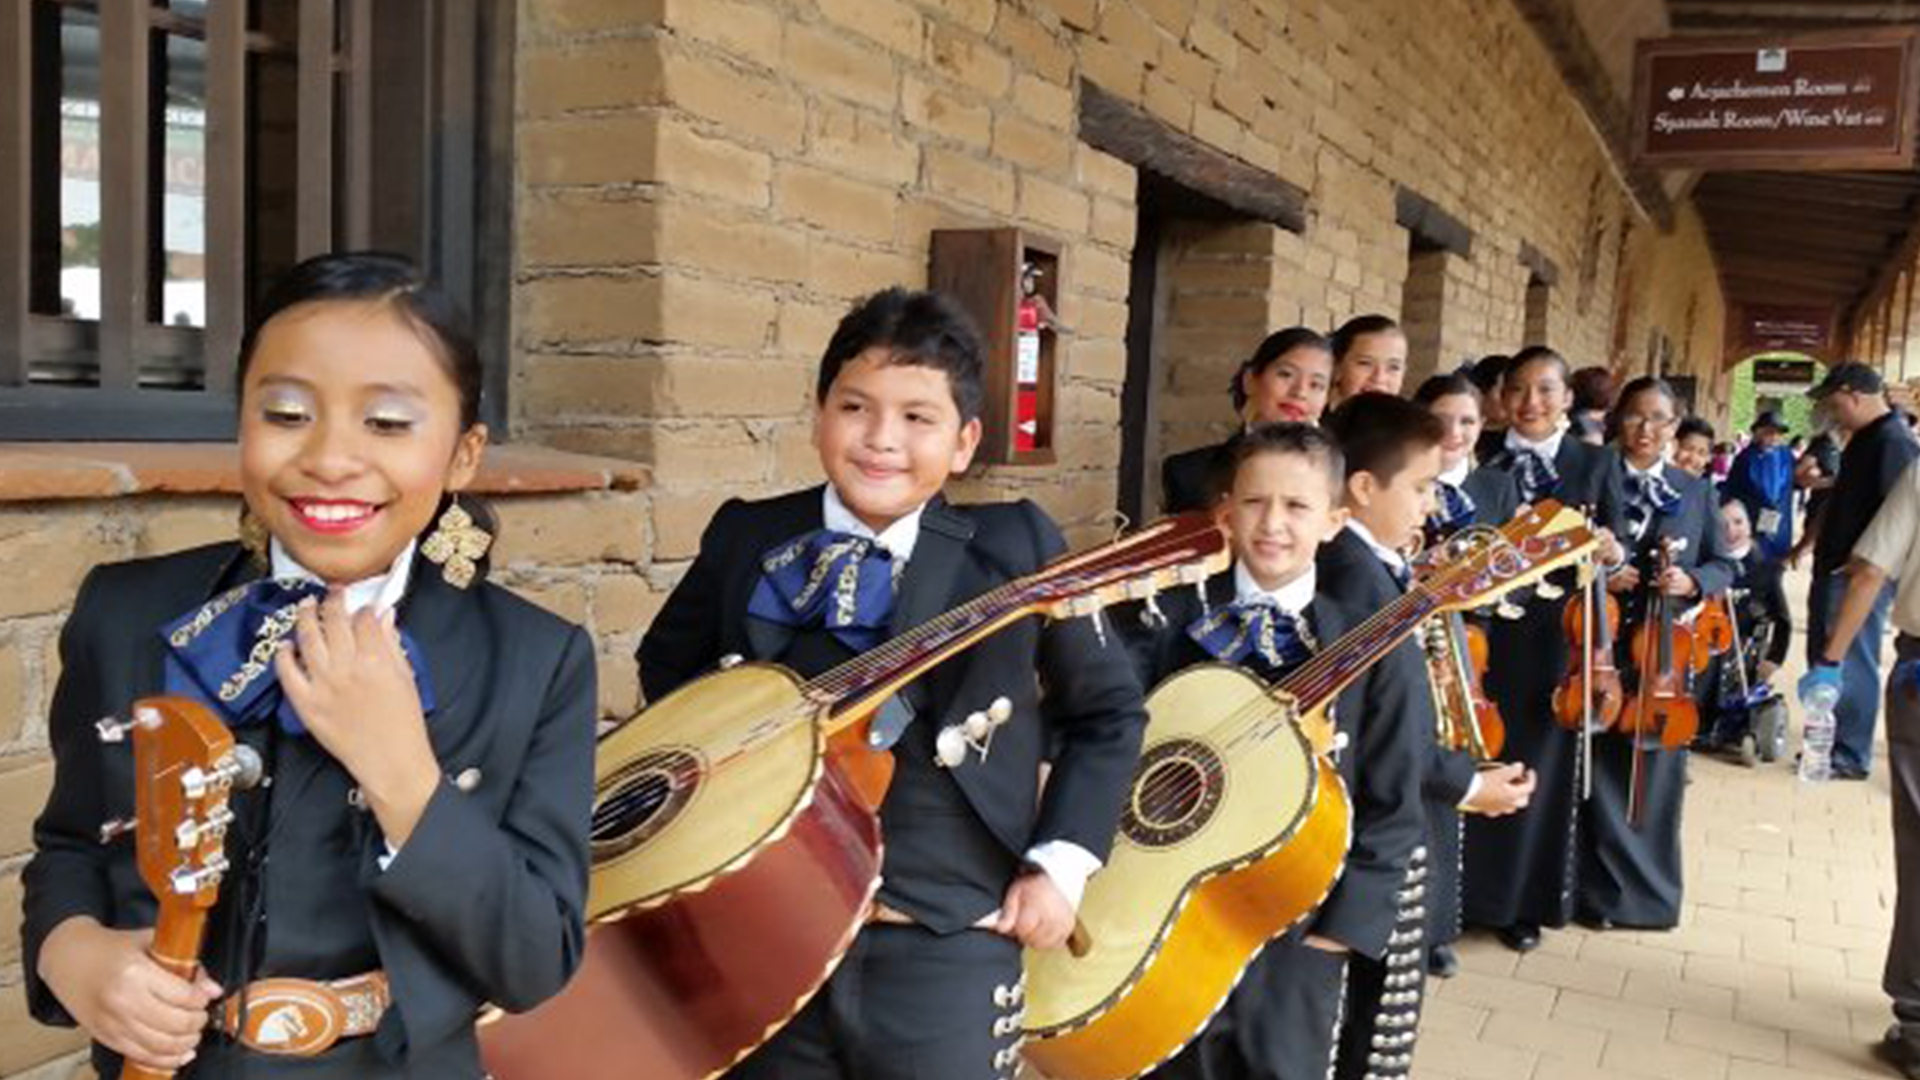 Children enjoying the Battle of the Mariachis event